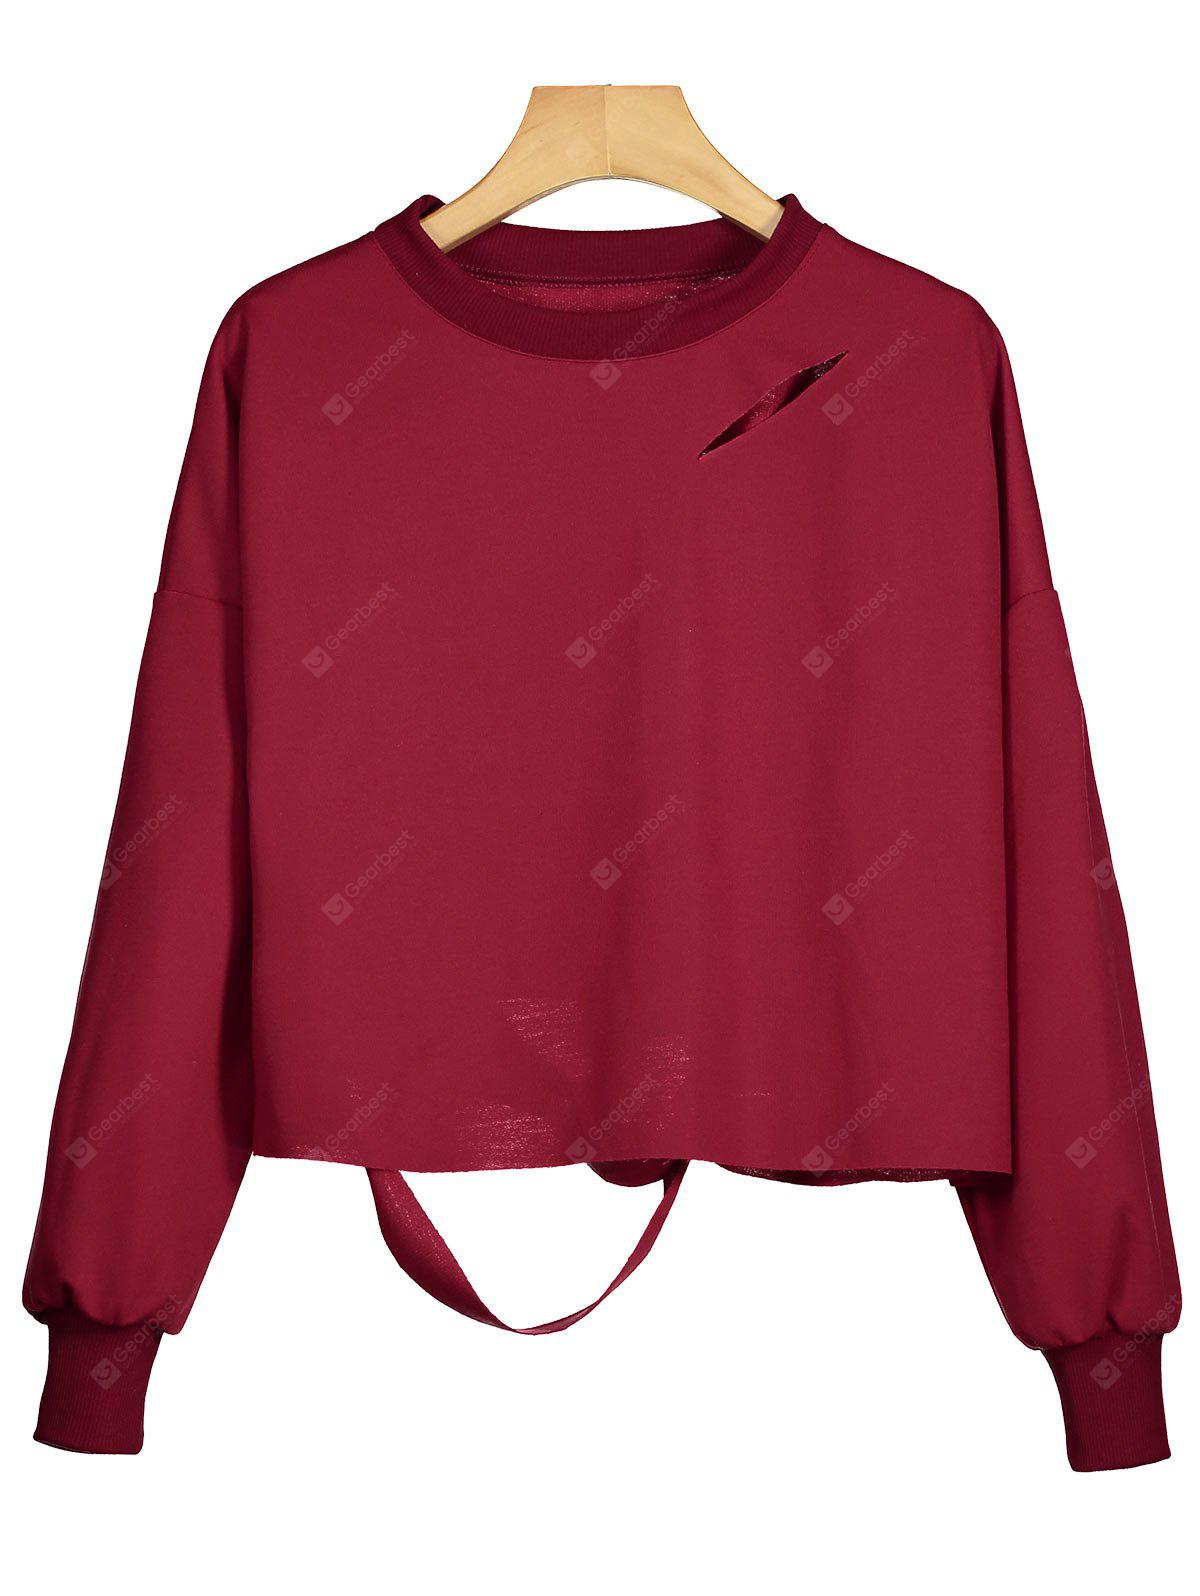 Drop Shoulder Cut Out Sweatshirt